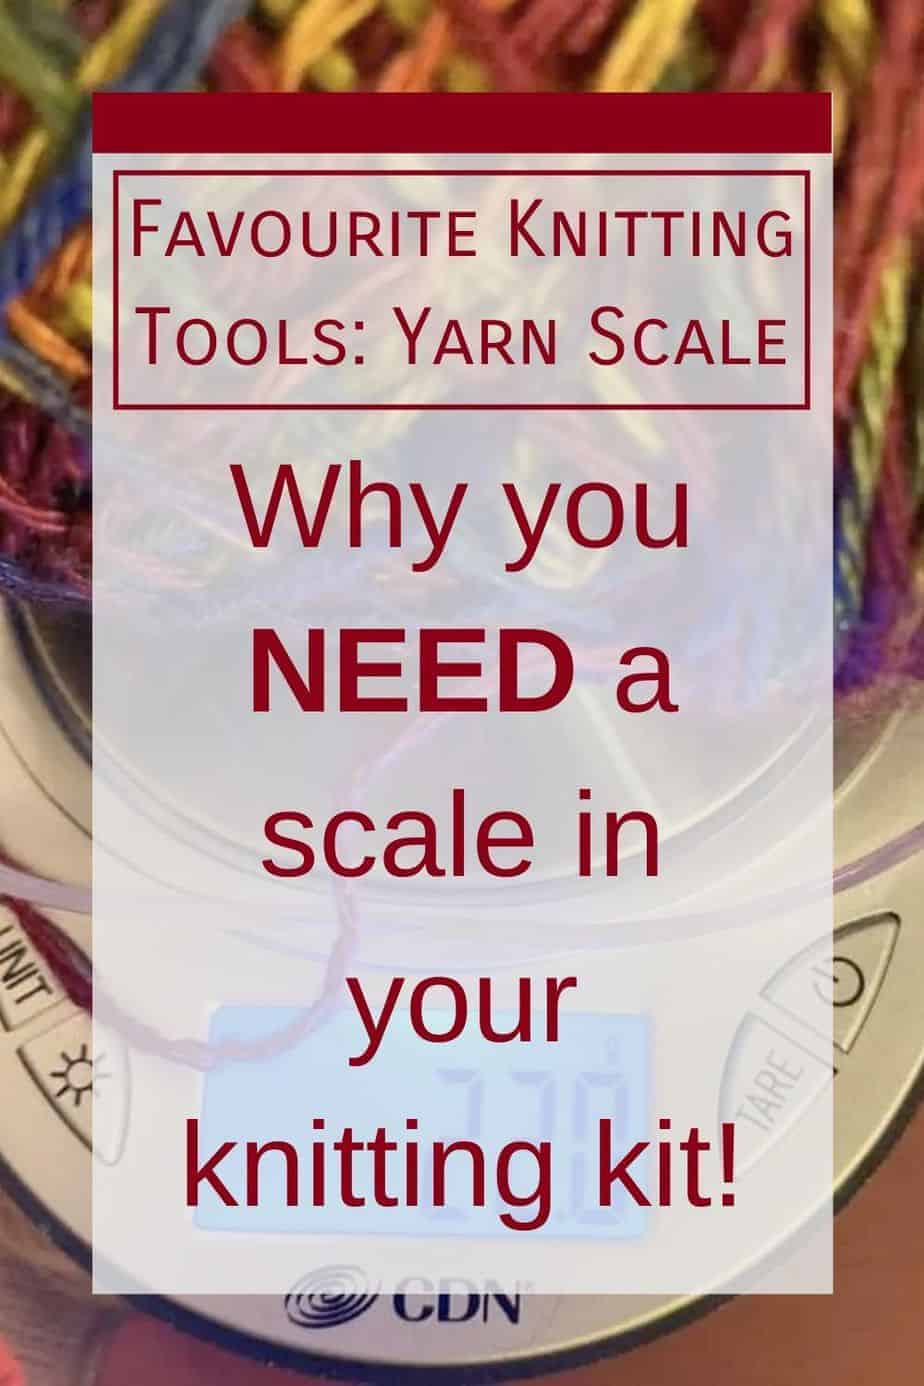 Favourite Knitting Tools: Yarn Scale with yarn: Why you want to weigh your yarn. How to weigh your yarn. How to find the perfect yarn scale. Plus, why you need coins in your knitting kit.